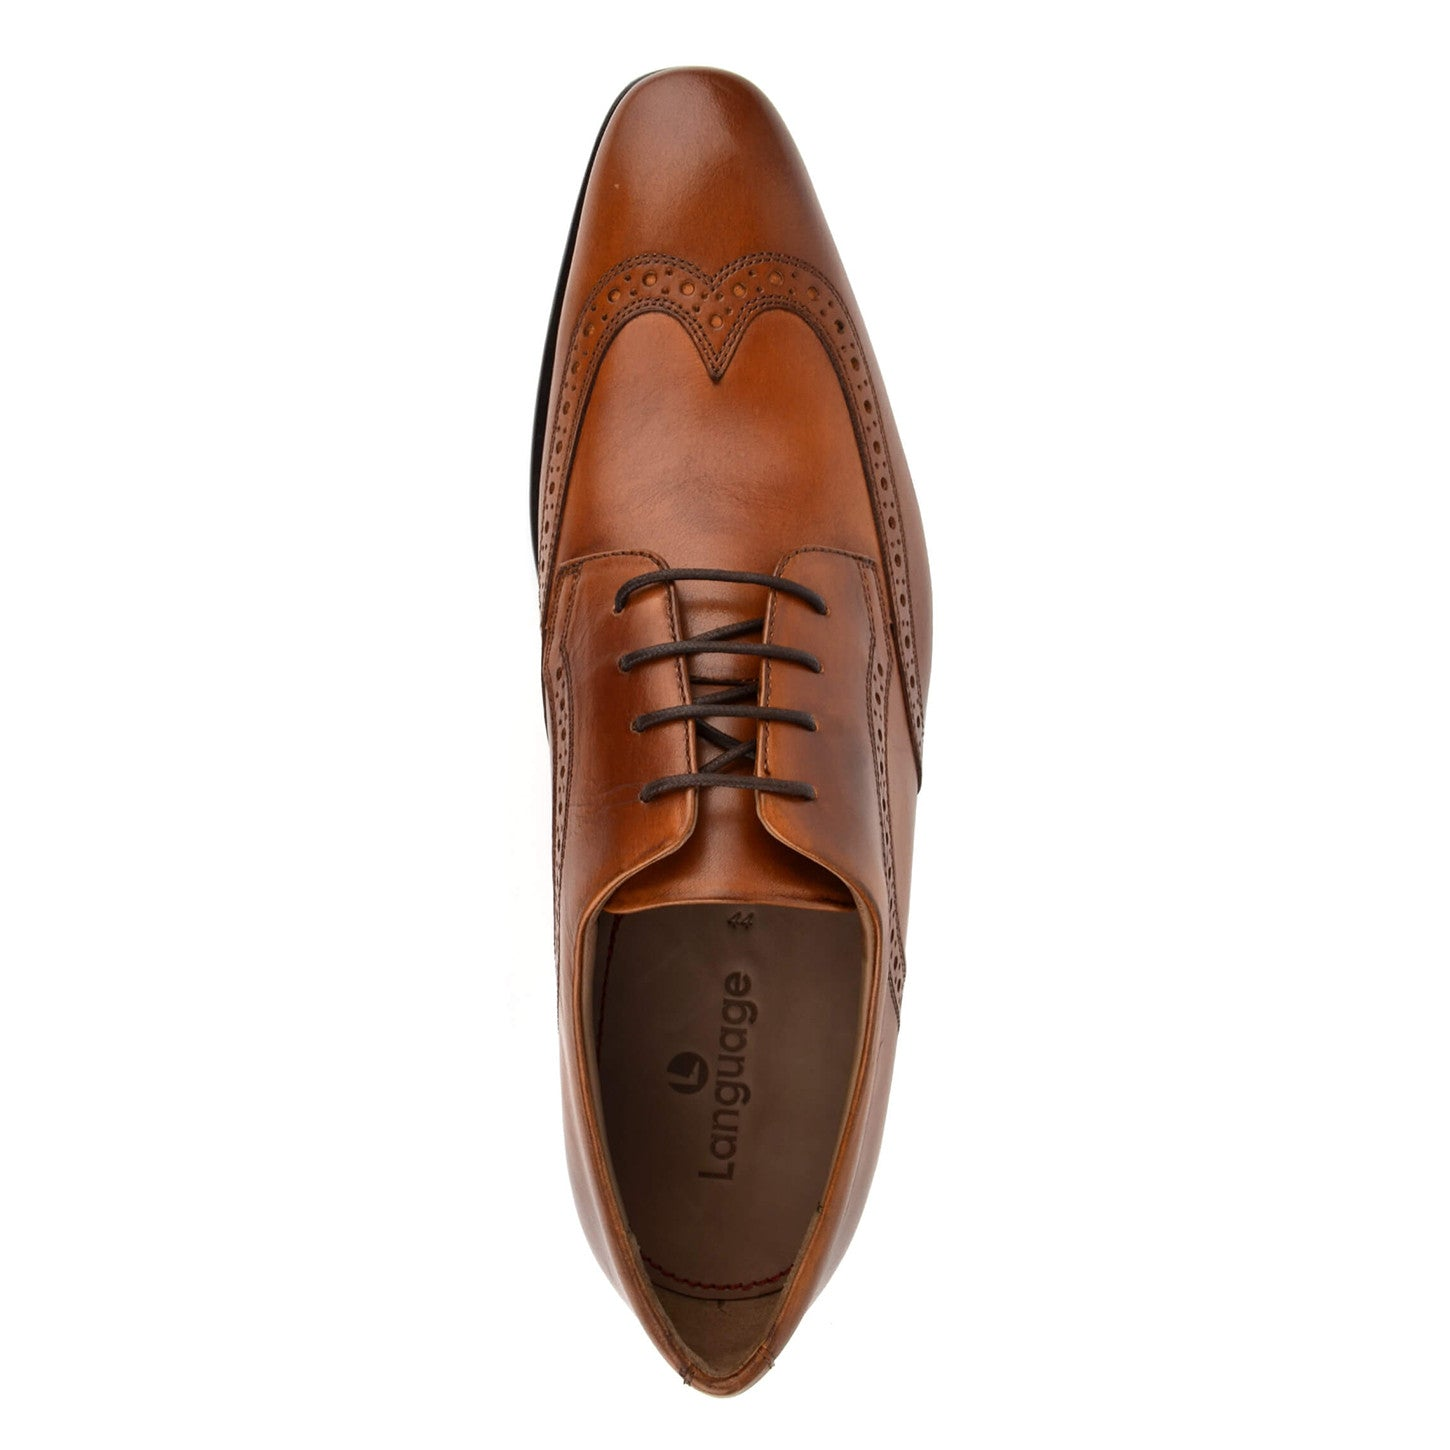 LM411 - Language Cosmo Men's Formal Tan Derby Shoes